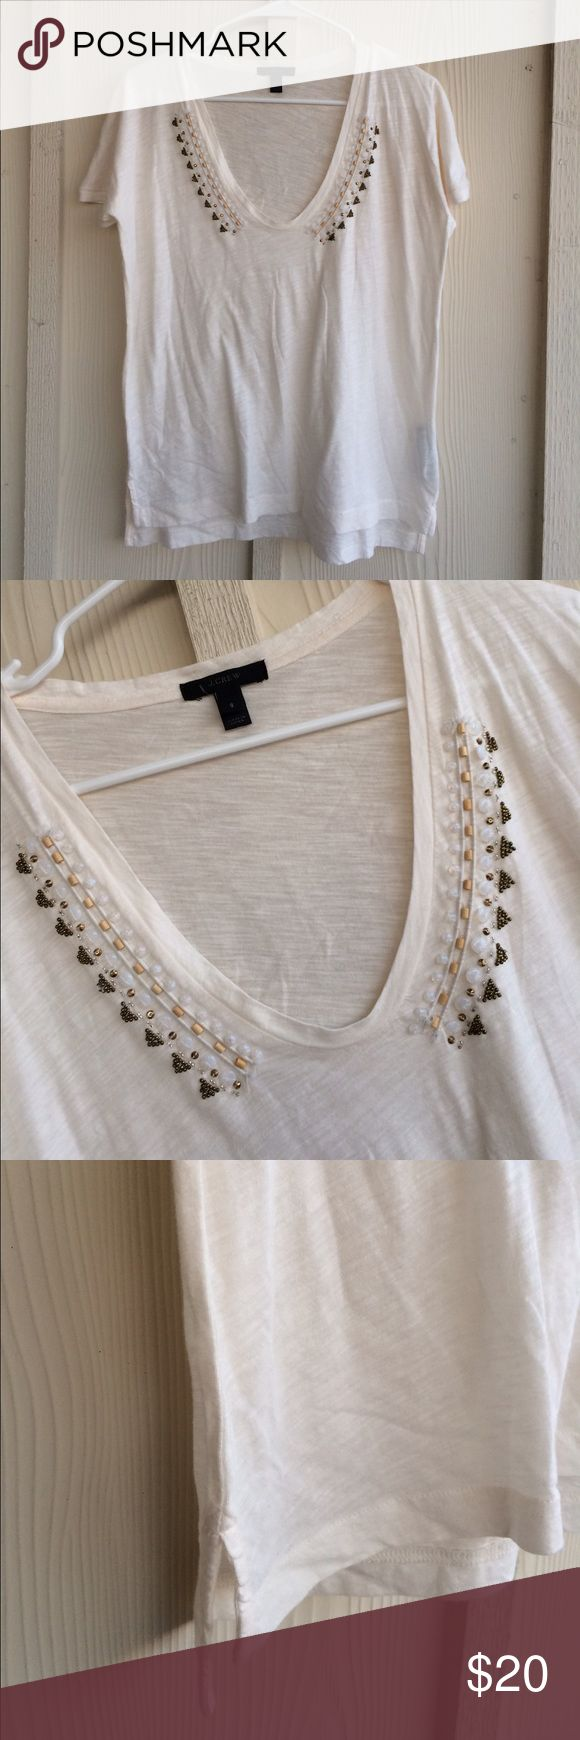 CLOSEOUT 🎀 J. Crew Embellished Cream Tee Beautiful embellished deep scoop neck tee. Excellent condition. Side slits and all stones intact. J. Crew Tops Tees - Short Sleeve